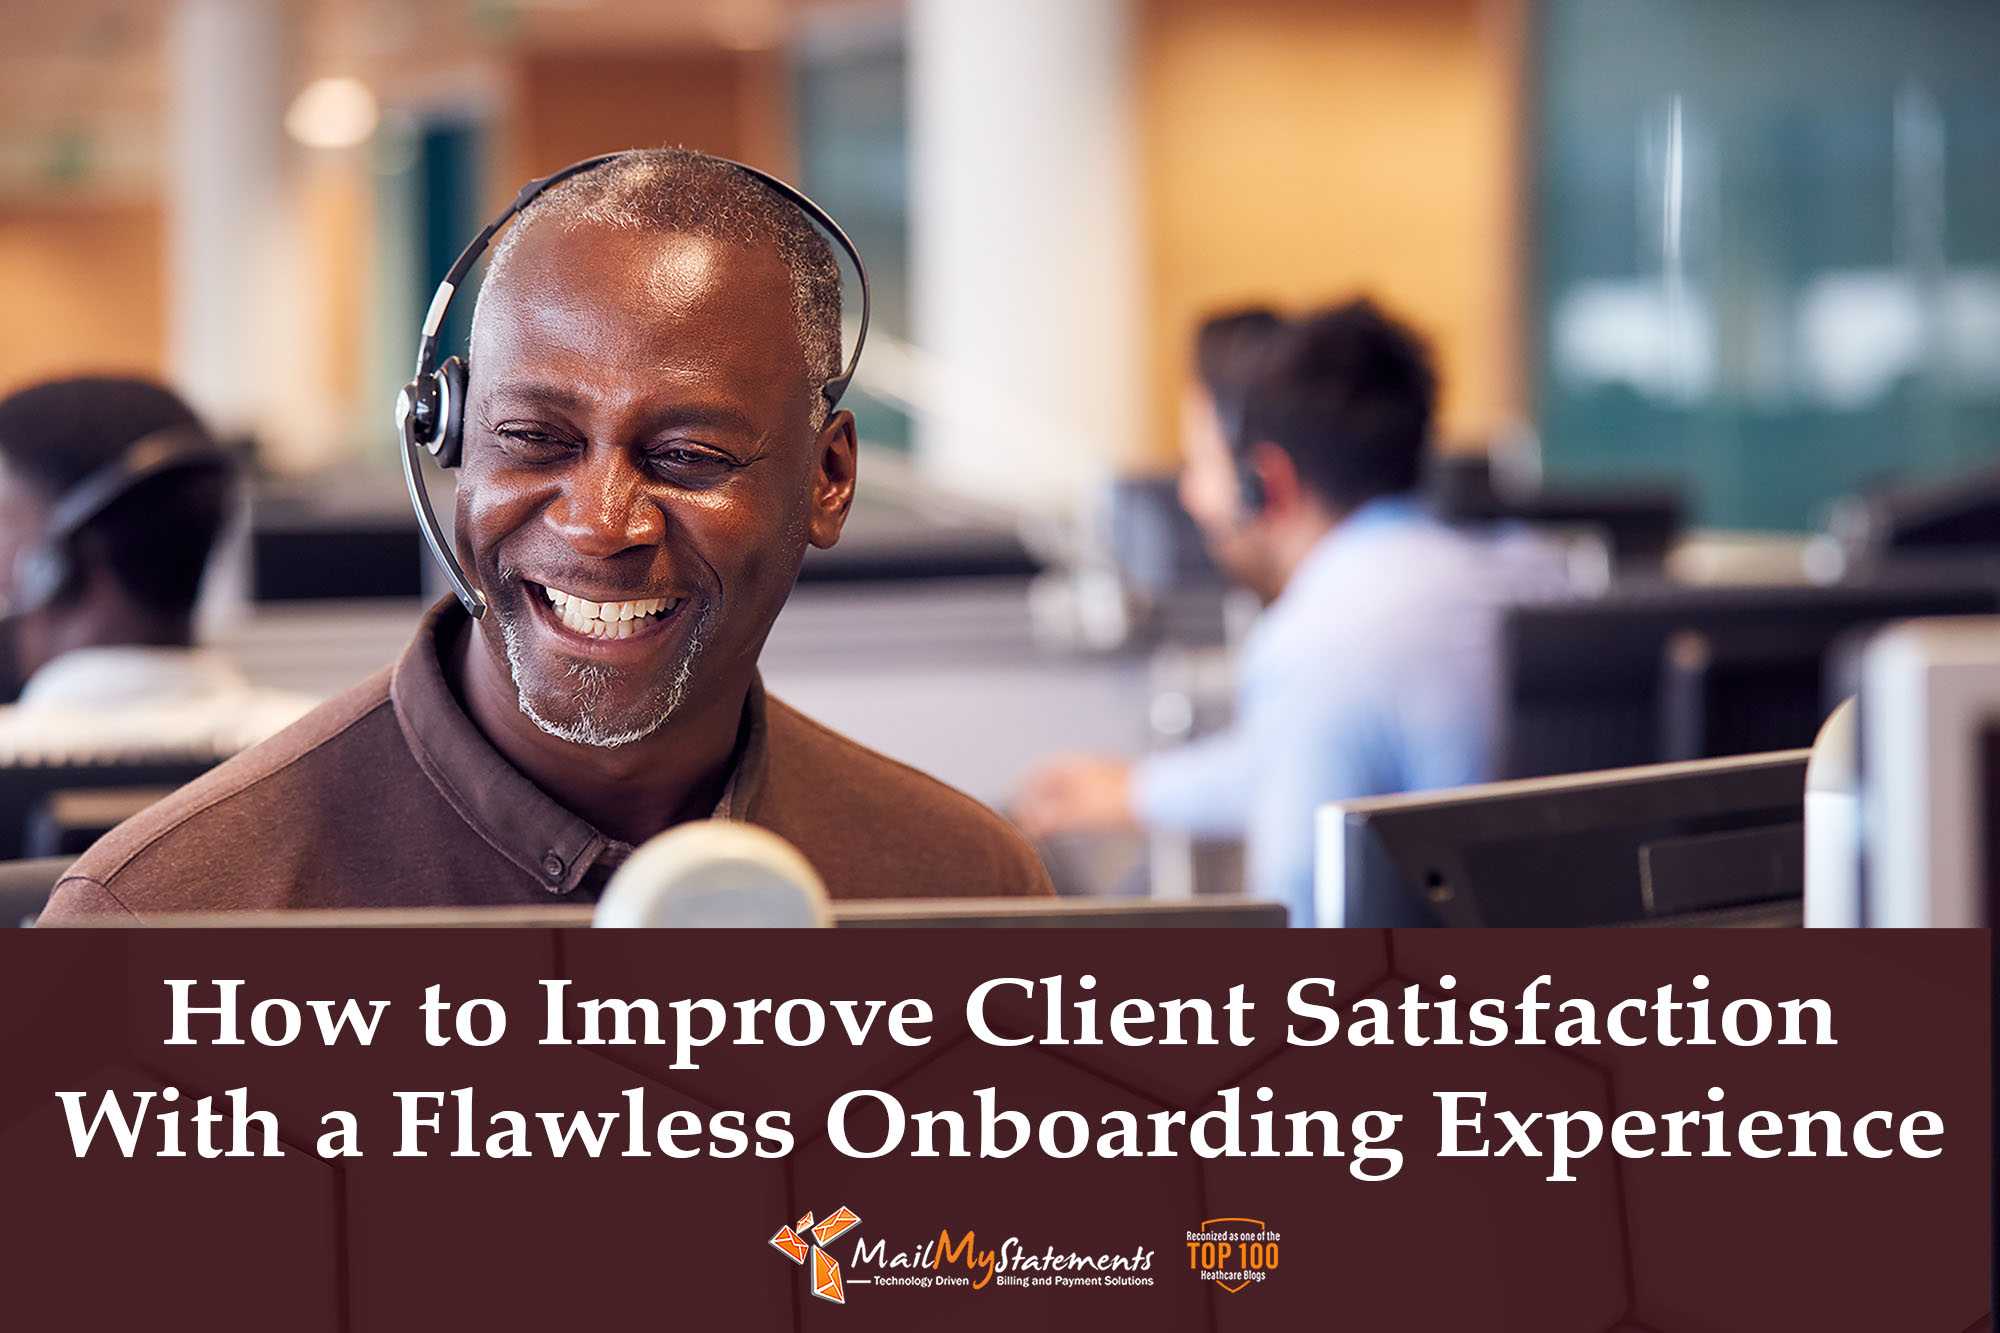 How to Improve Client Satisfaction With a Flawless Onboarding Experience